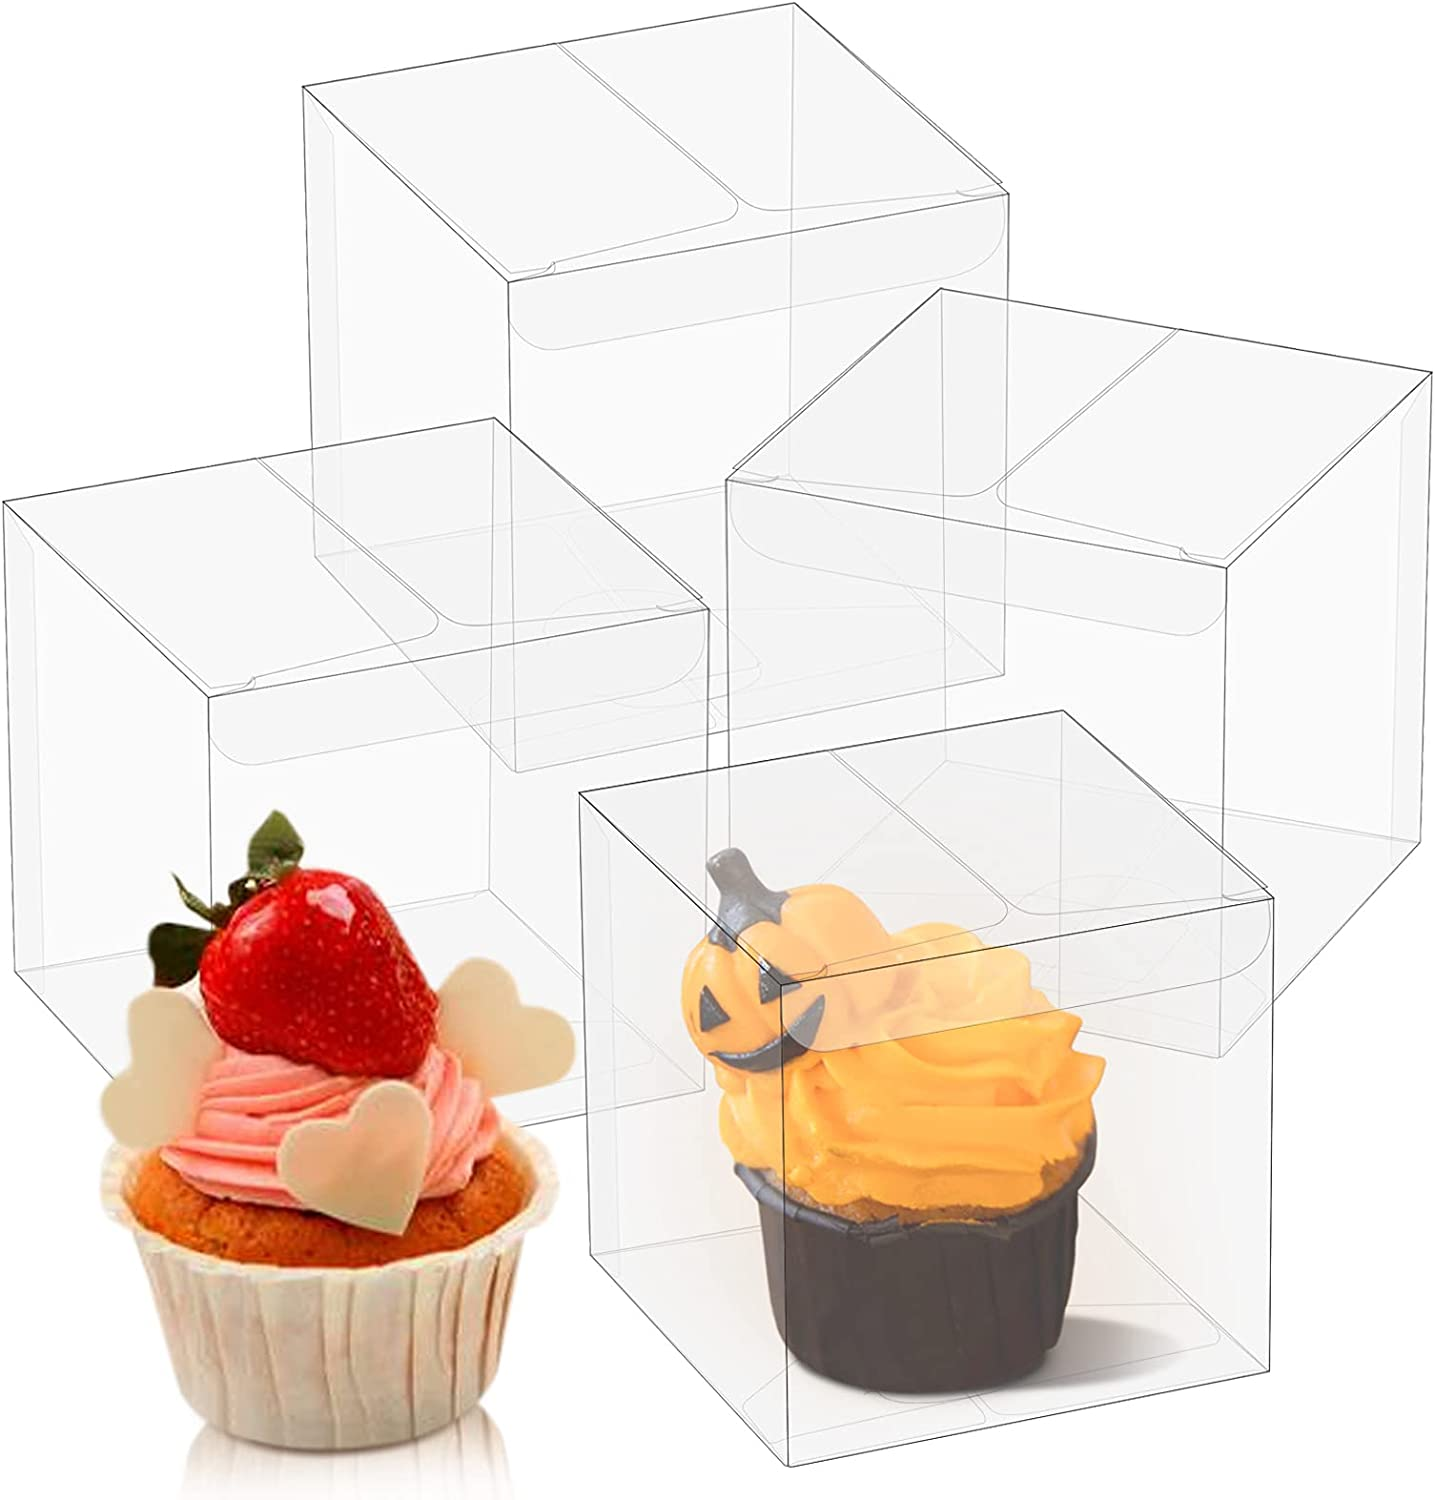 Oomcu 50 Pack Clear Plastic Favor Boxes,Transparent Macaron Cupcake Chocolate Candy Soap Gift Single Individual Packaging Boxes for Christmas Valentine Wedding Party Baby Shower Display(3